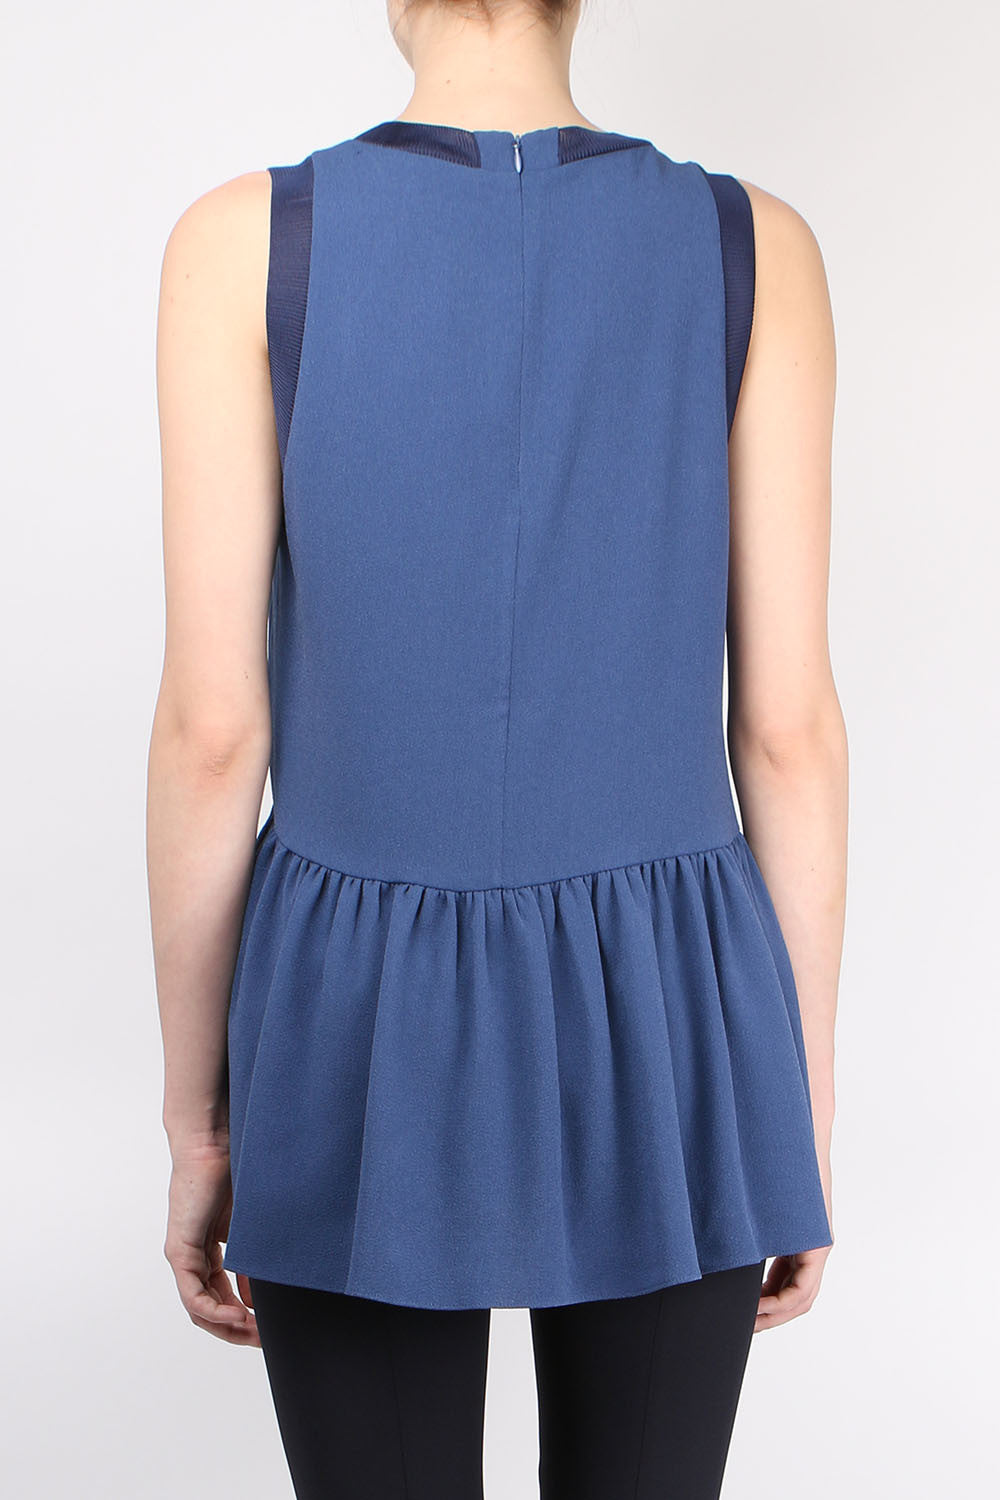 Savanna Crepe Sleeveless Top